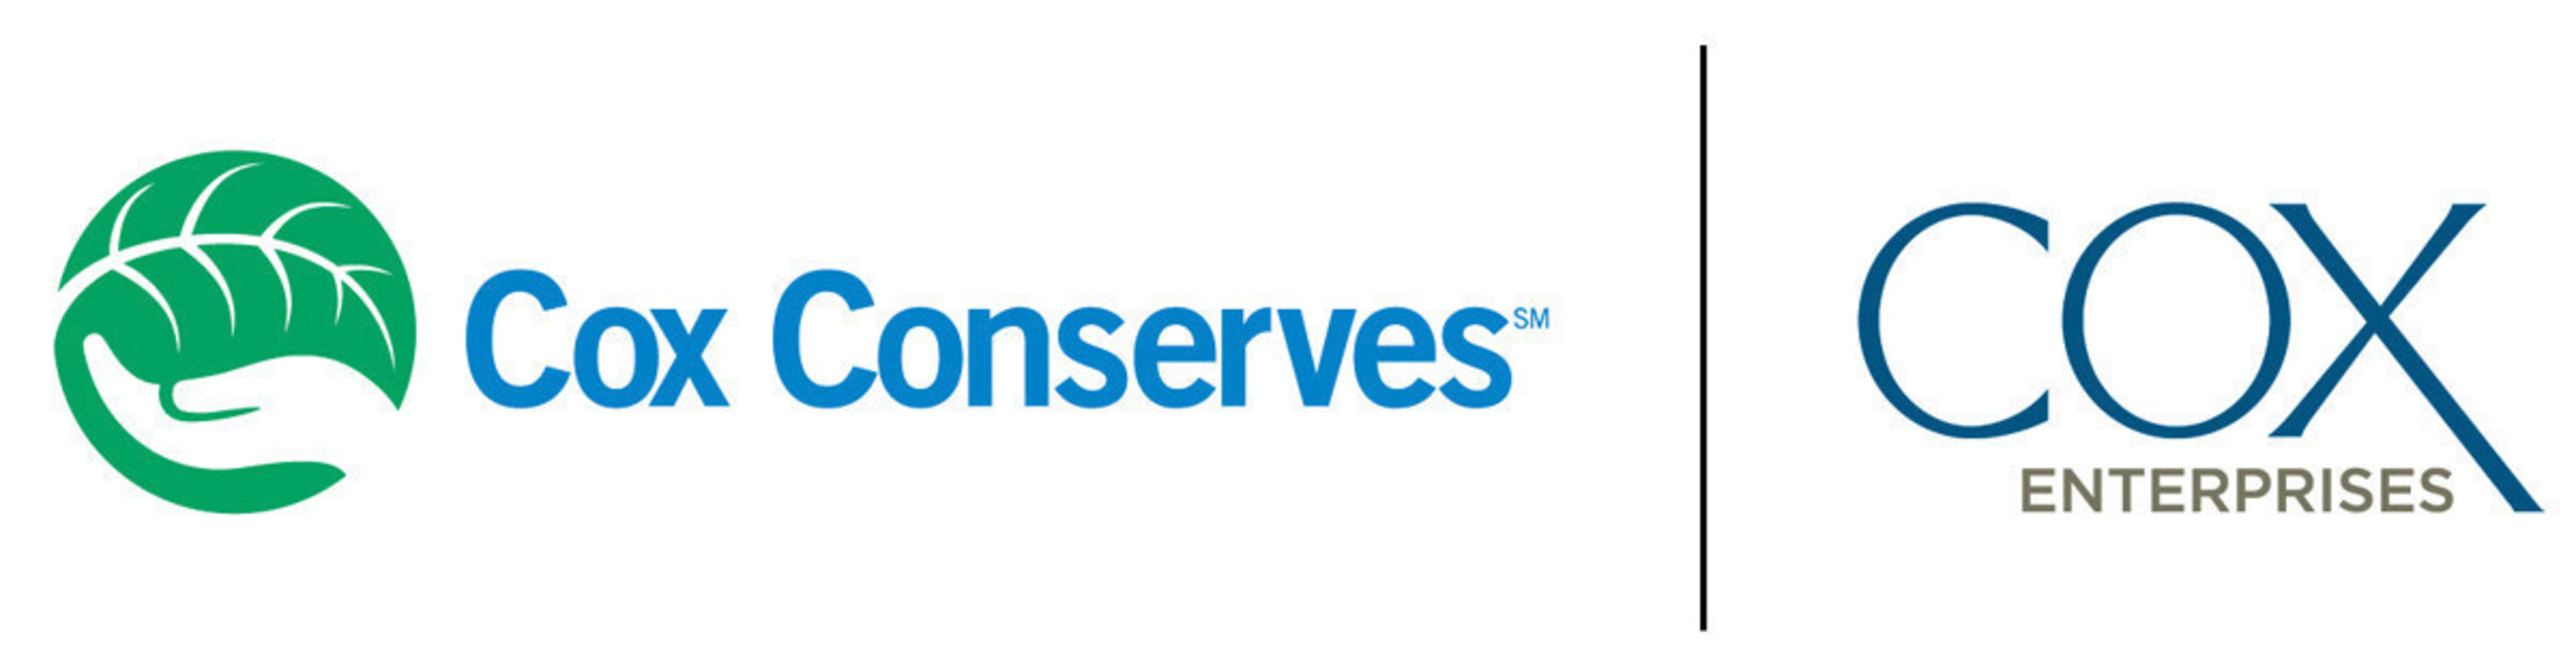 Cox Conserves is the company's national sustainability program.